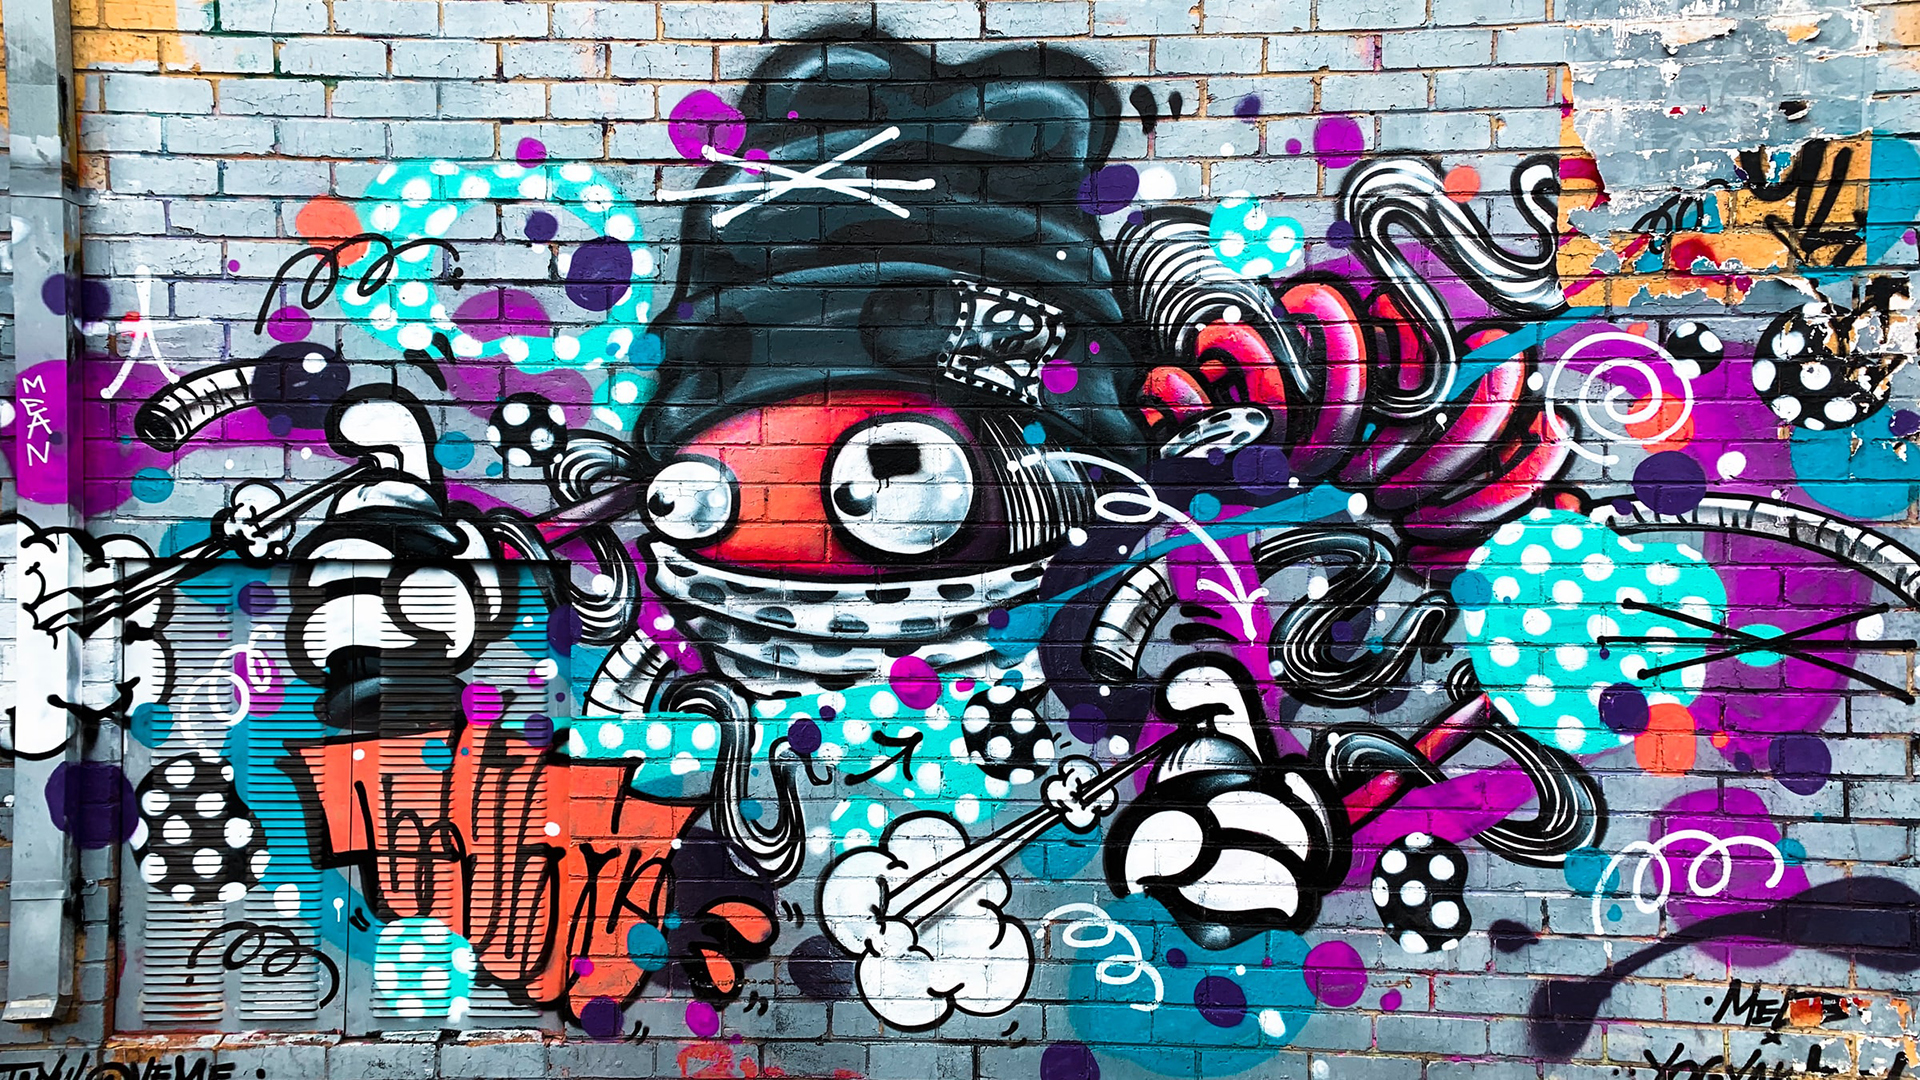 Colorful graffiti wall. Virtual background to use on Zoom, Microsoft Teams, Skype, Google Meet, WebEx or any other compatible app.